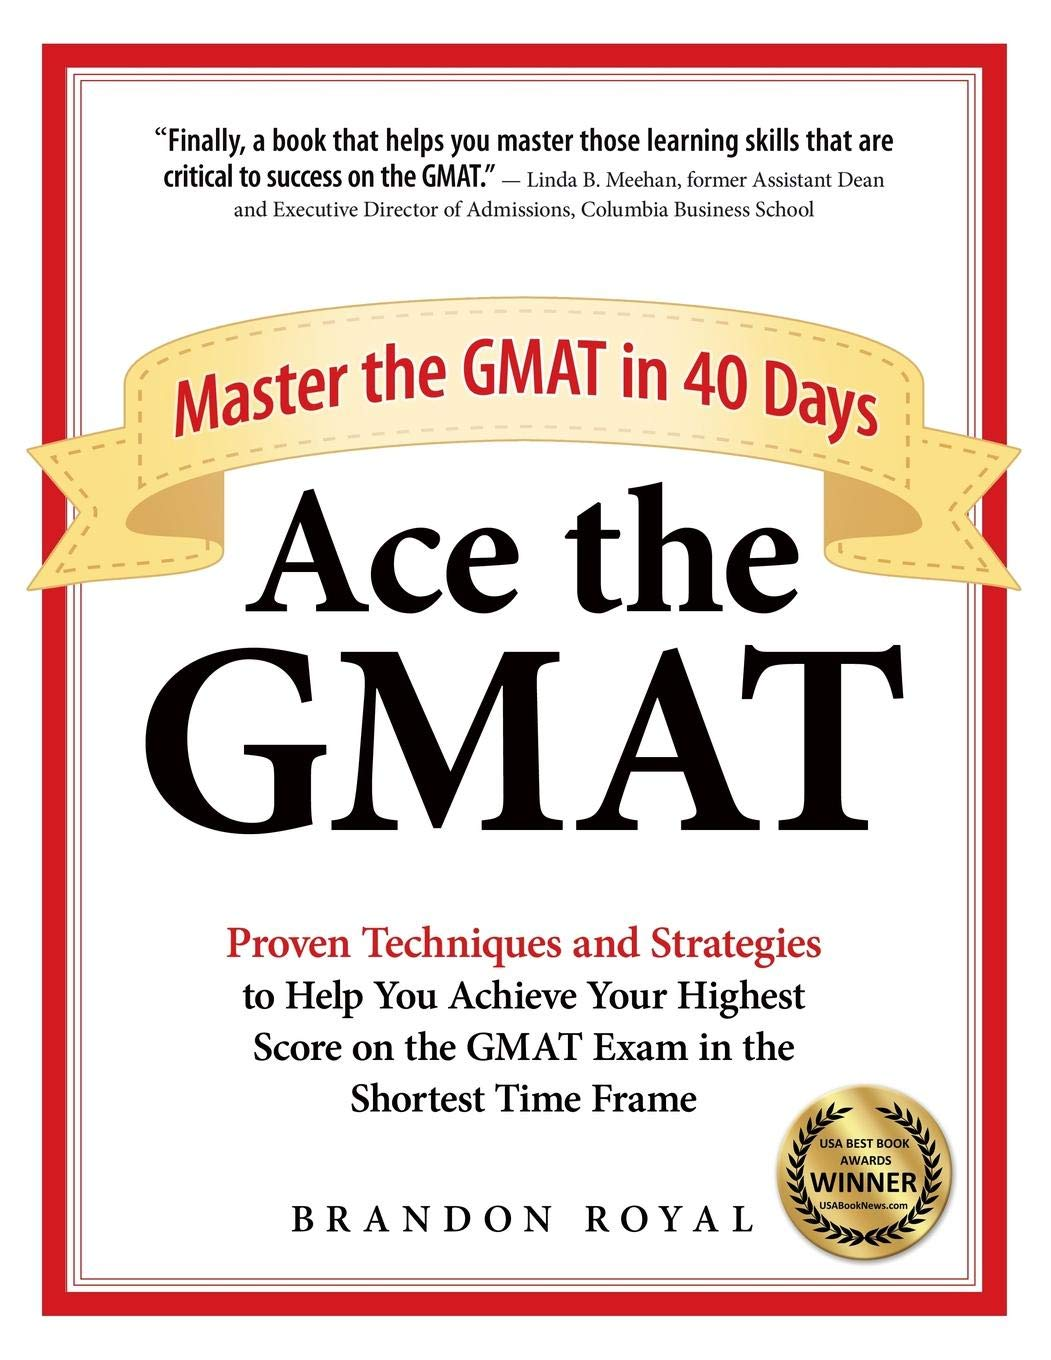 Ace the GMAT: Master the GMAT in 40 Days by Maven Publishing